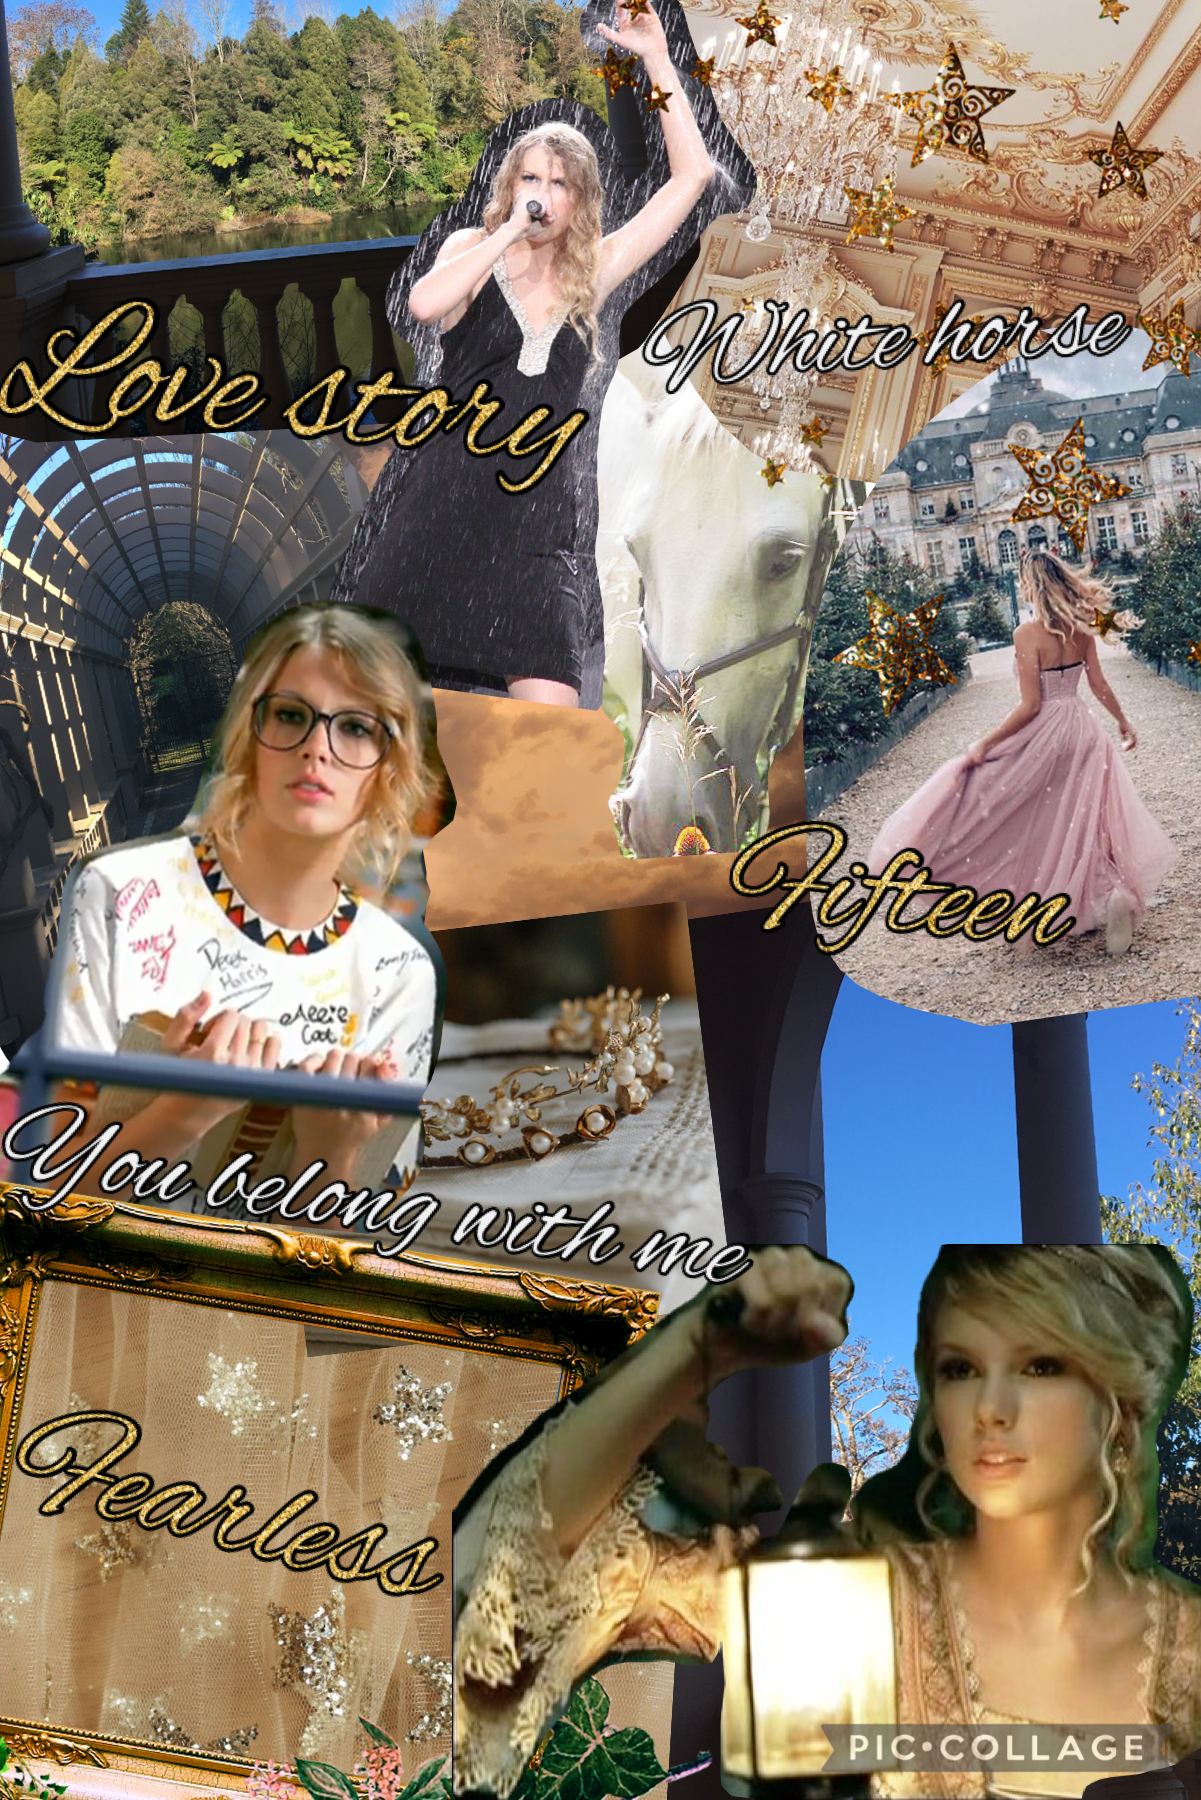 Fearless Taylor Swift collage 4.7.21